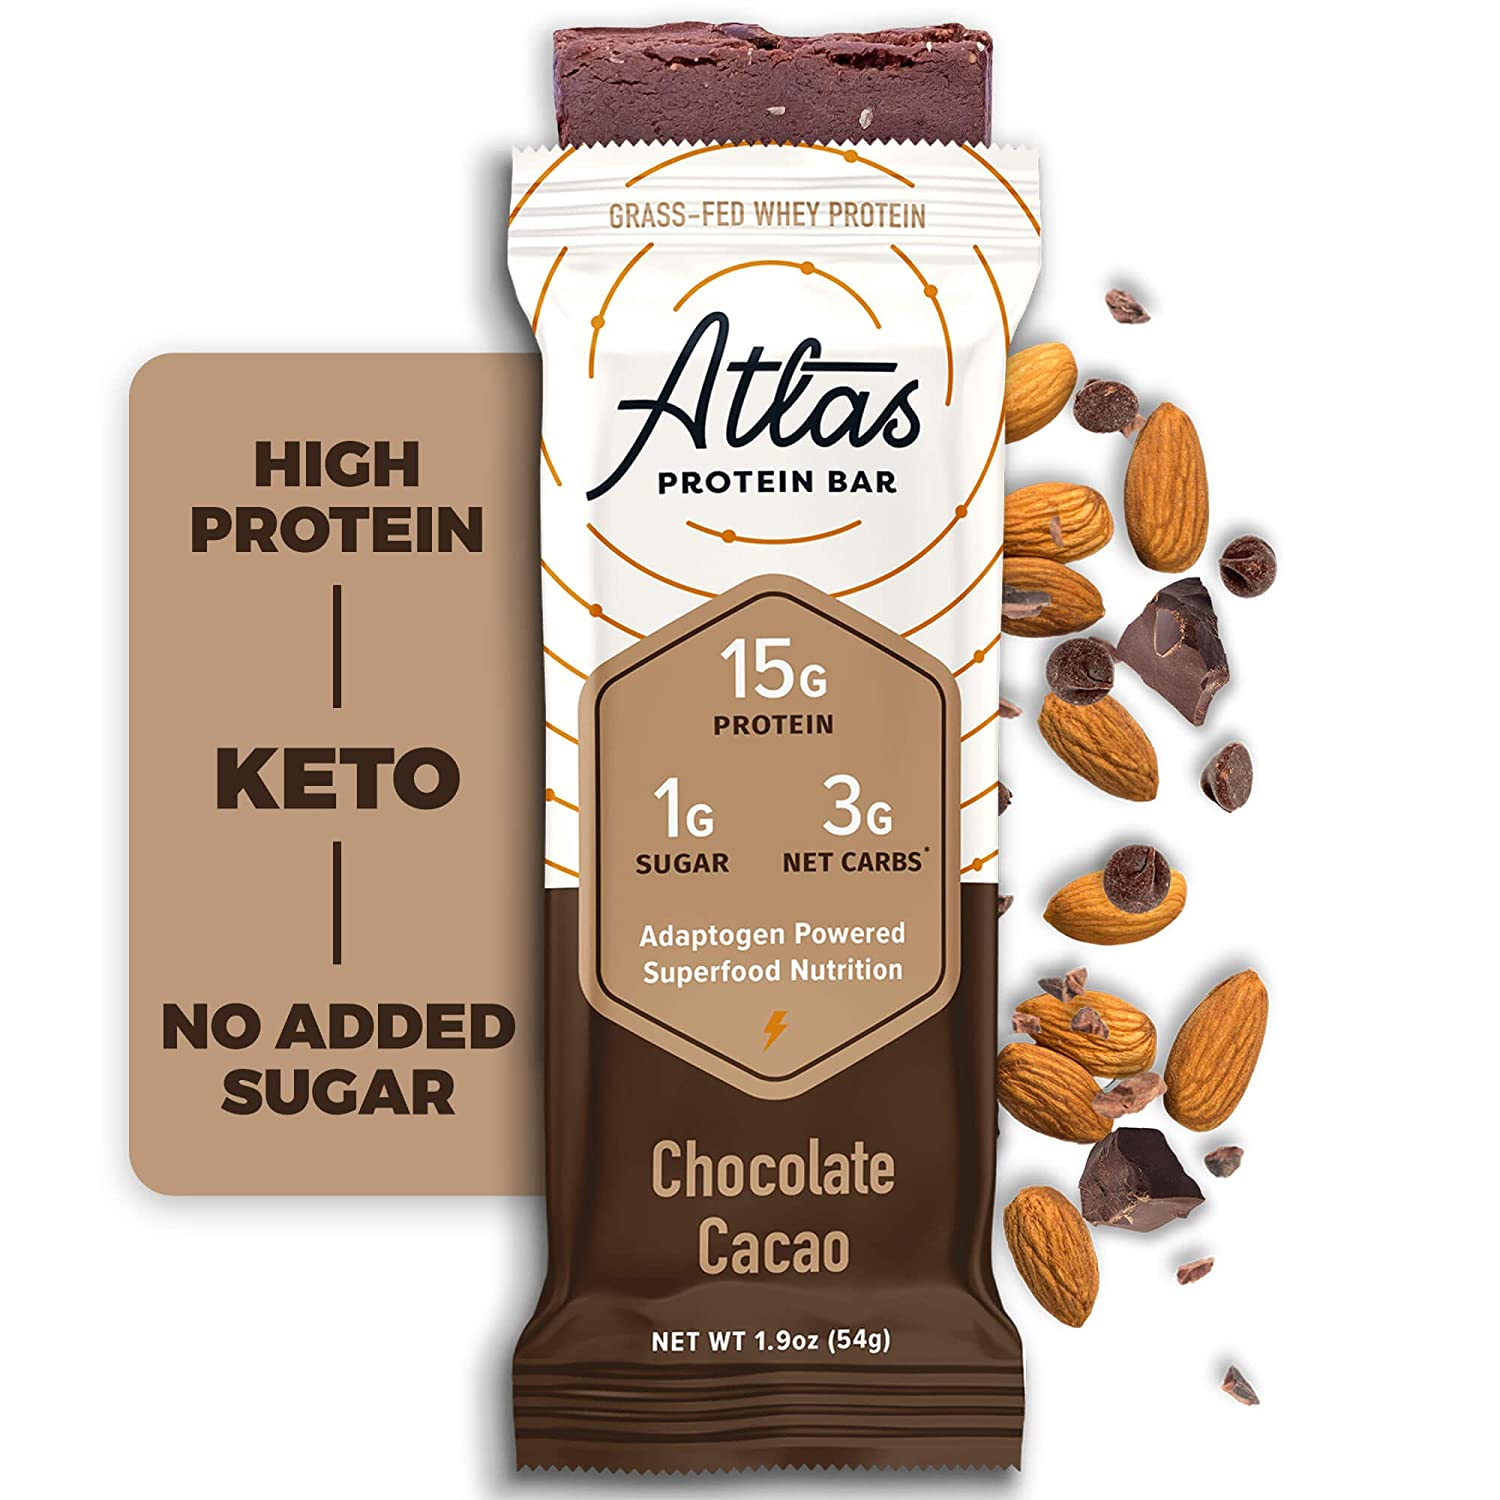 Atlas Protein Bar, Meal Replacement, Keto-Friendly Snack, Grass-Fed Whey, Organic Ashwagandha, Low Sugar, Low Carb, Gluten Free, 10 pack, Chocolate Cacao